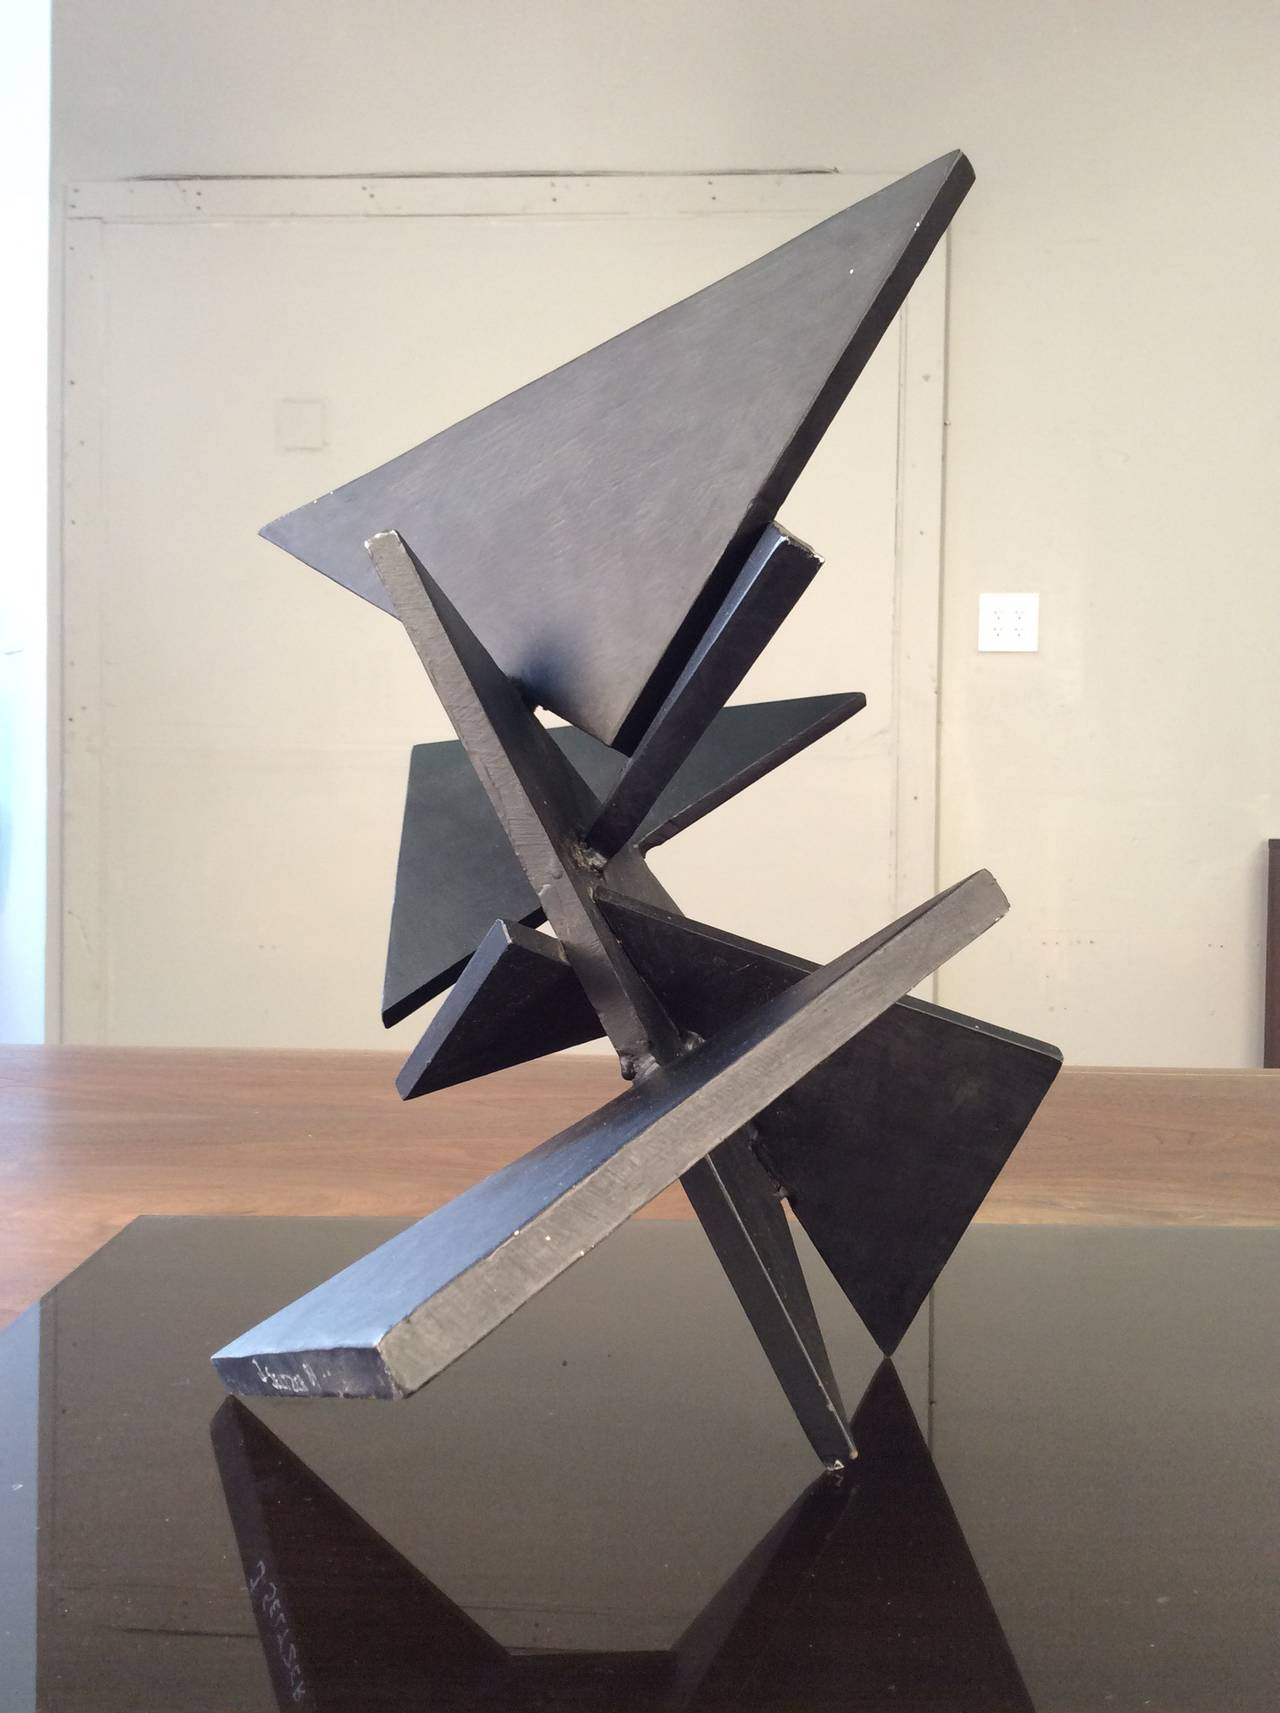 Beau Cut Steel Geometric Constructivist Table Sculpture Composed Of Thick Steel  Triangles, 1984 For Sale